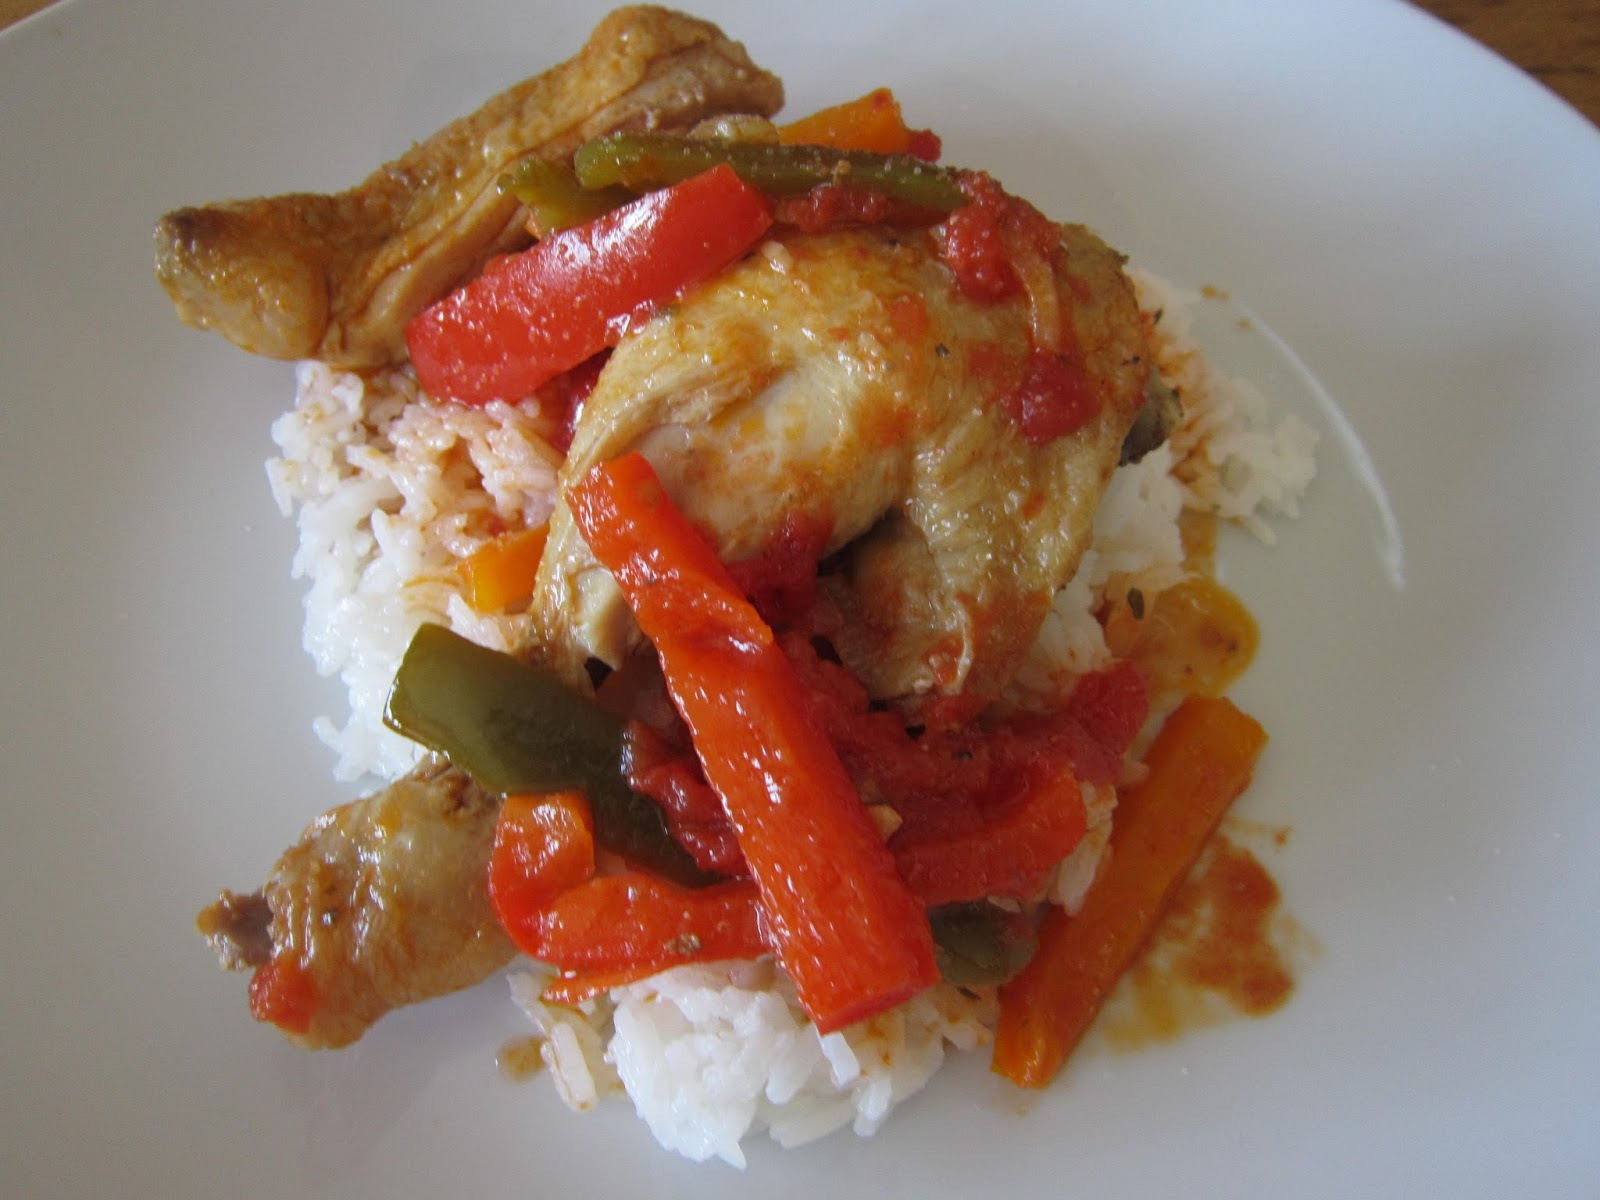 Lunch is served: Poulet / Chicken Basquaise and White Rice